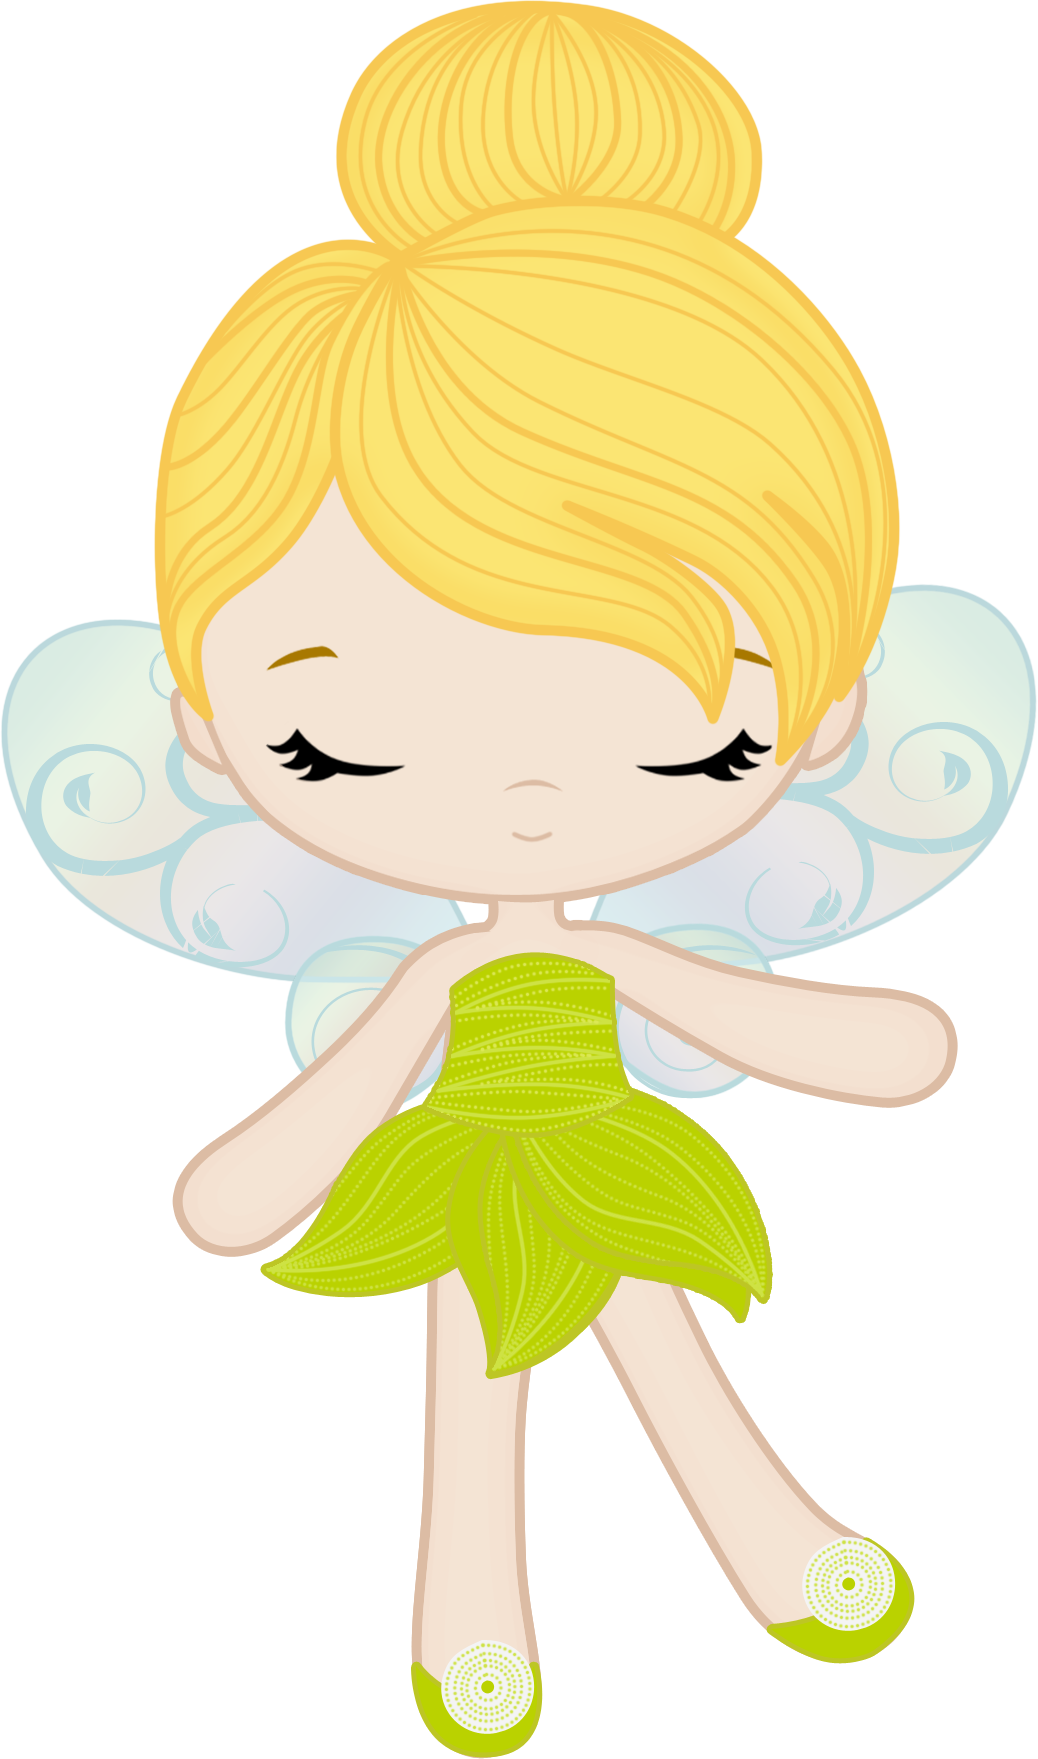 Tinkerbell clipart fairy chinese. Ib gndzqmjmosv png pinterest